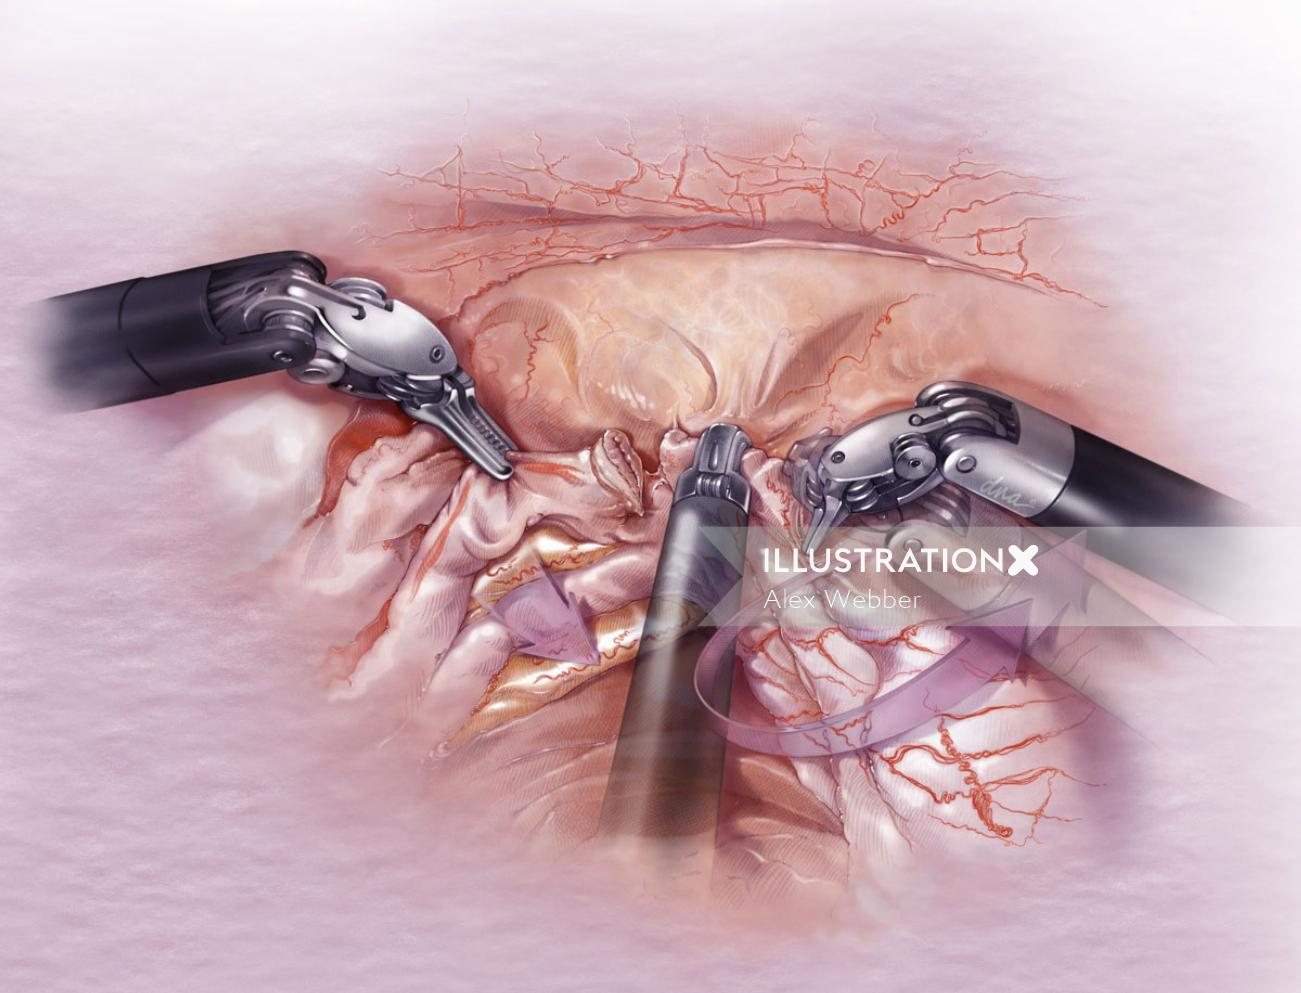 Uterine artery surgery illustration by AlexBaker